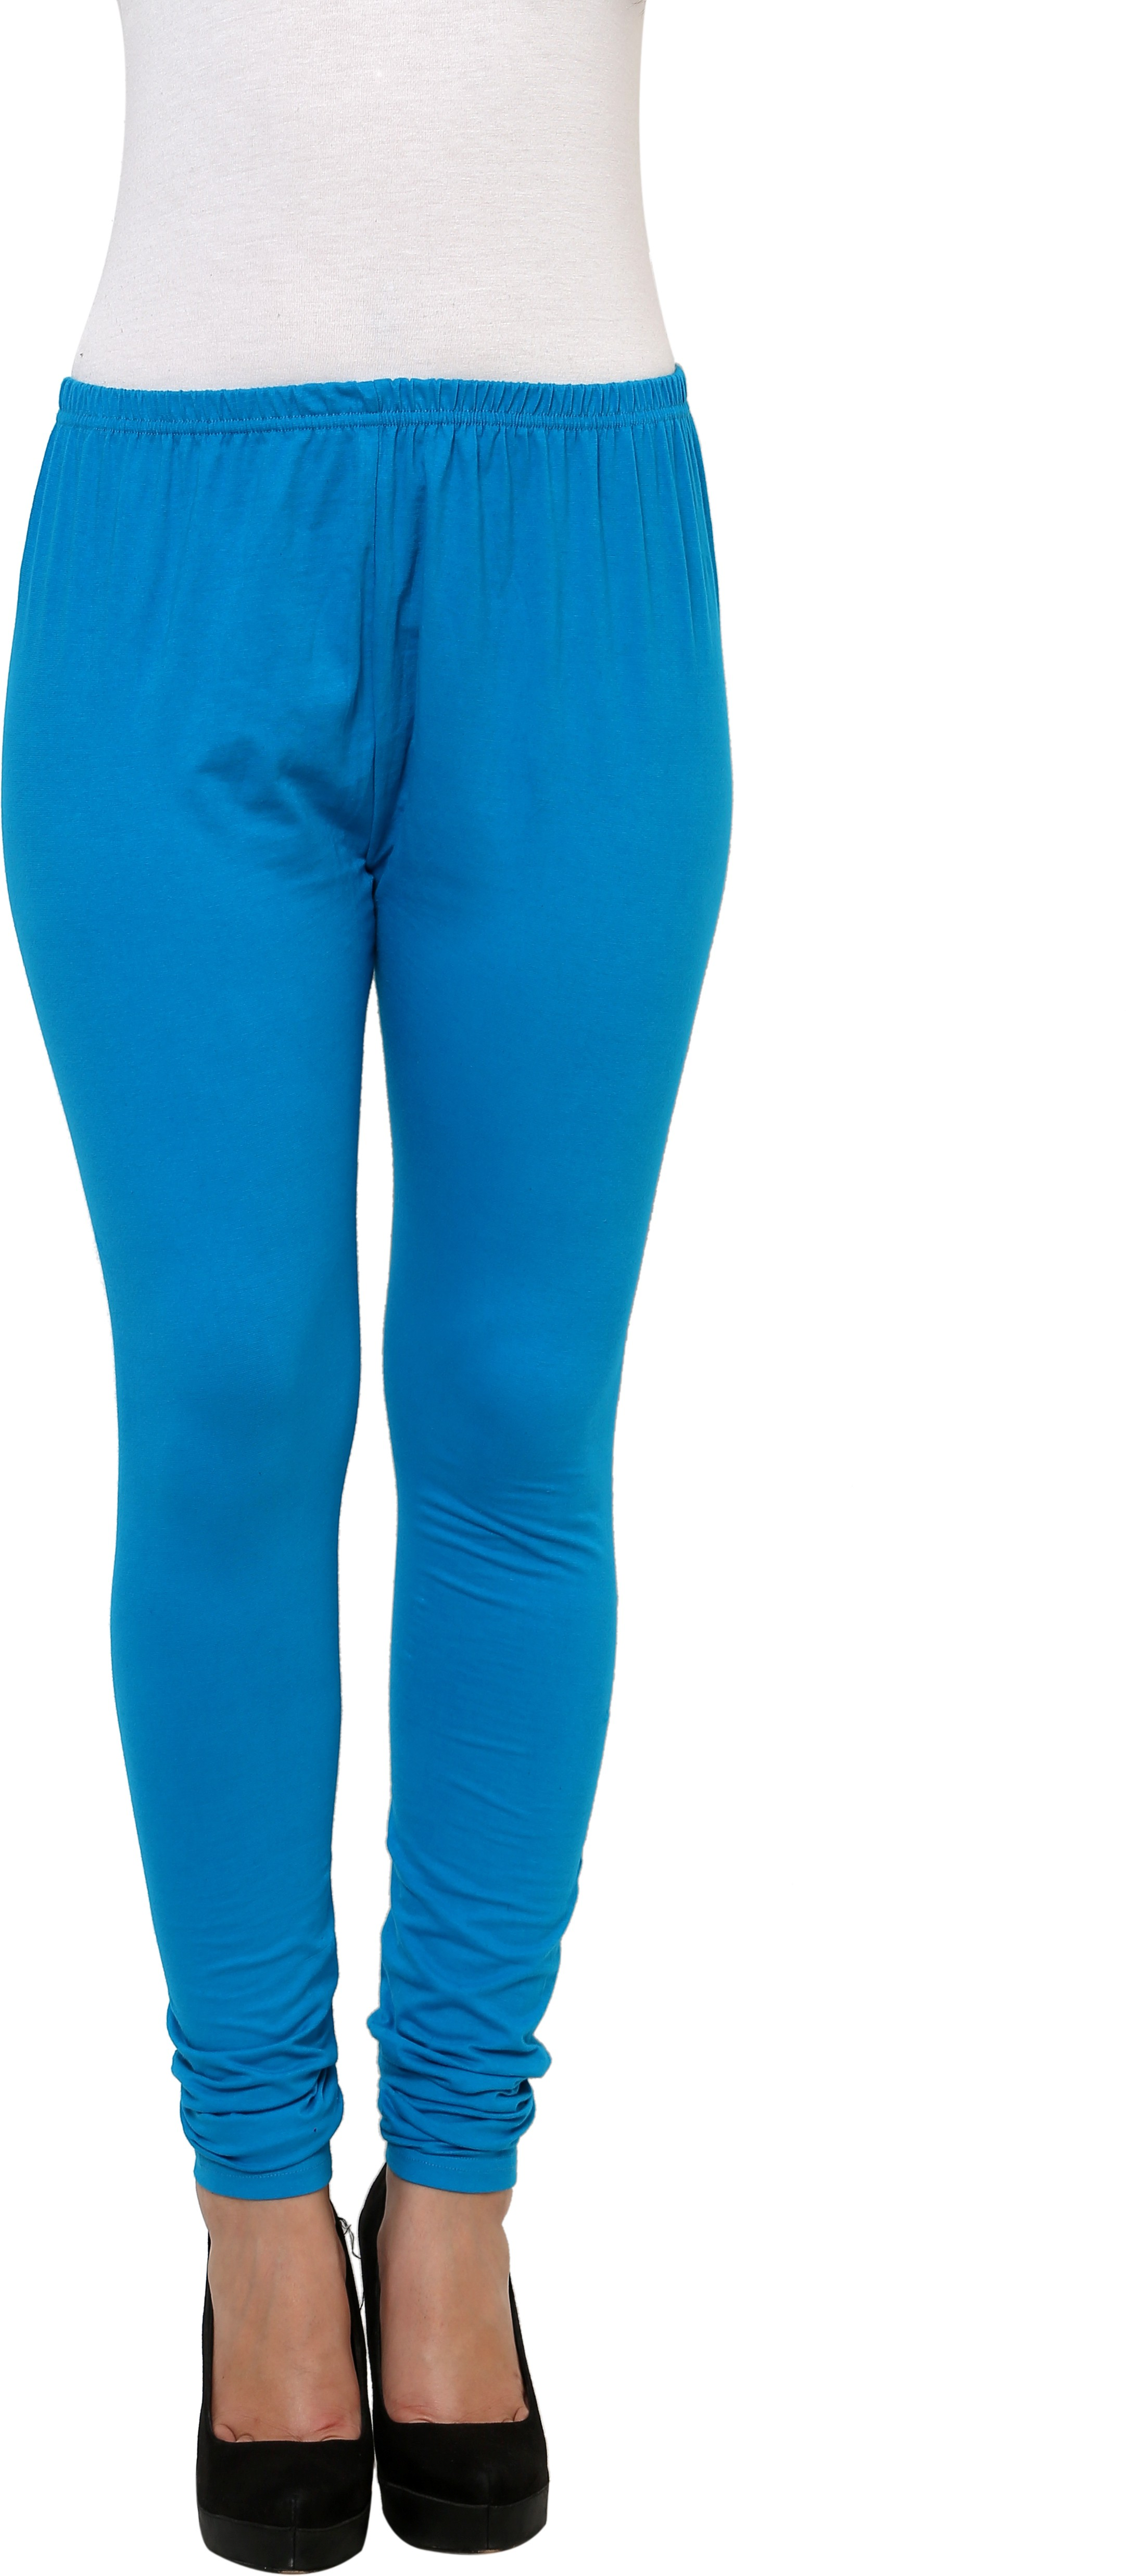 Leebonee Womens Light Blue Leggings